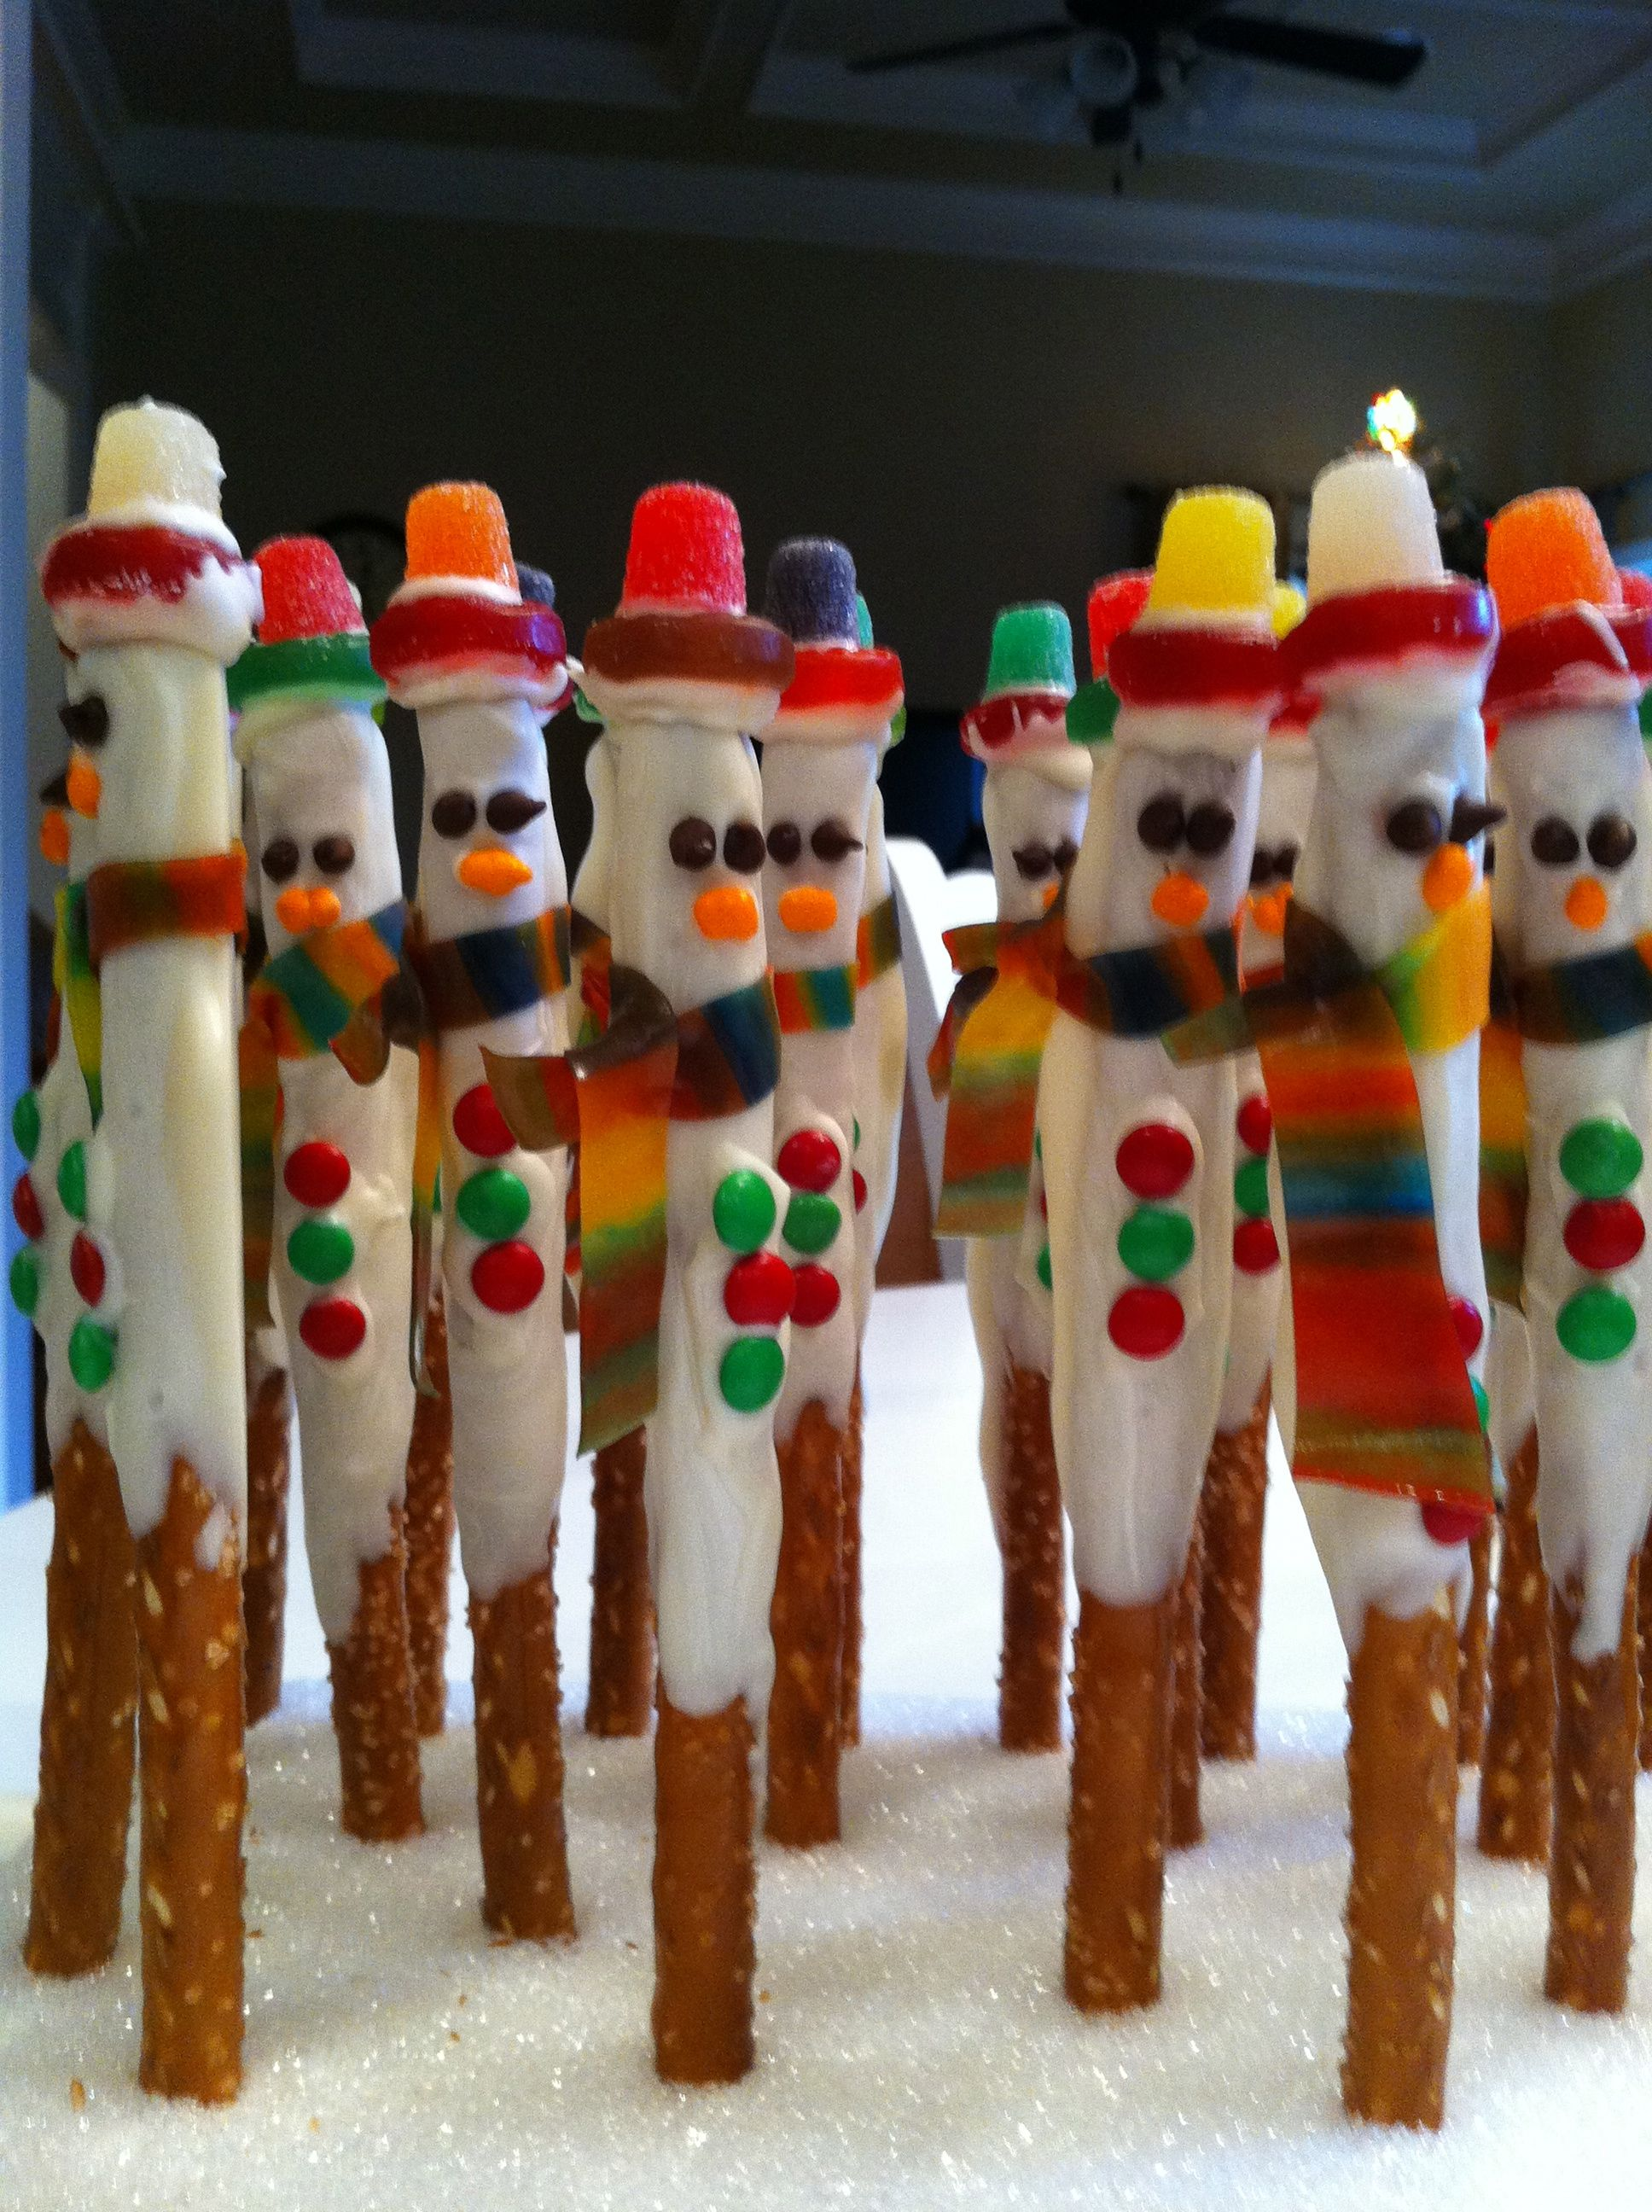 Snowman Sticks - adorable